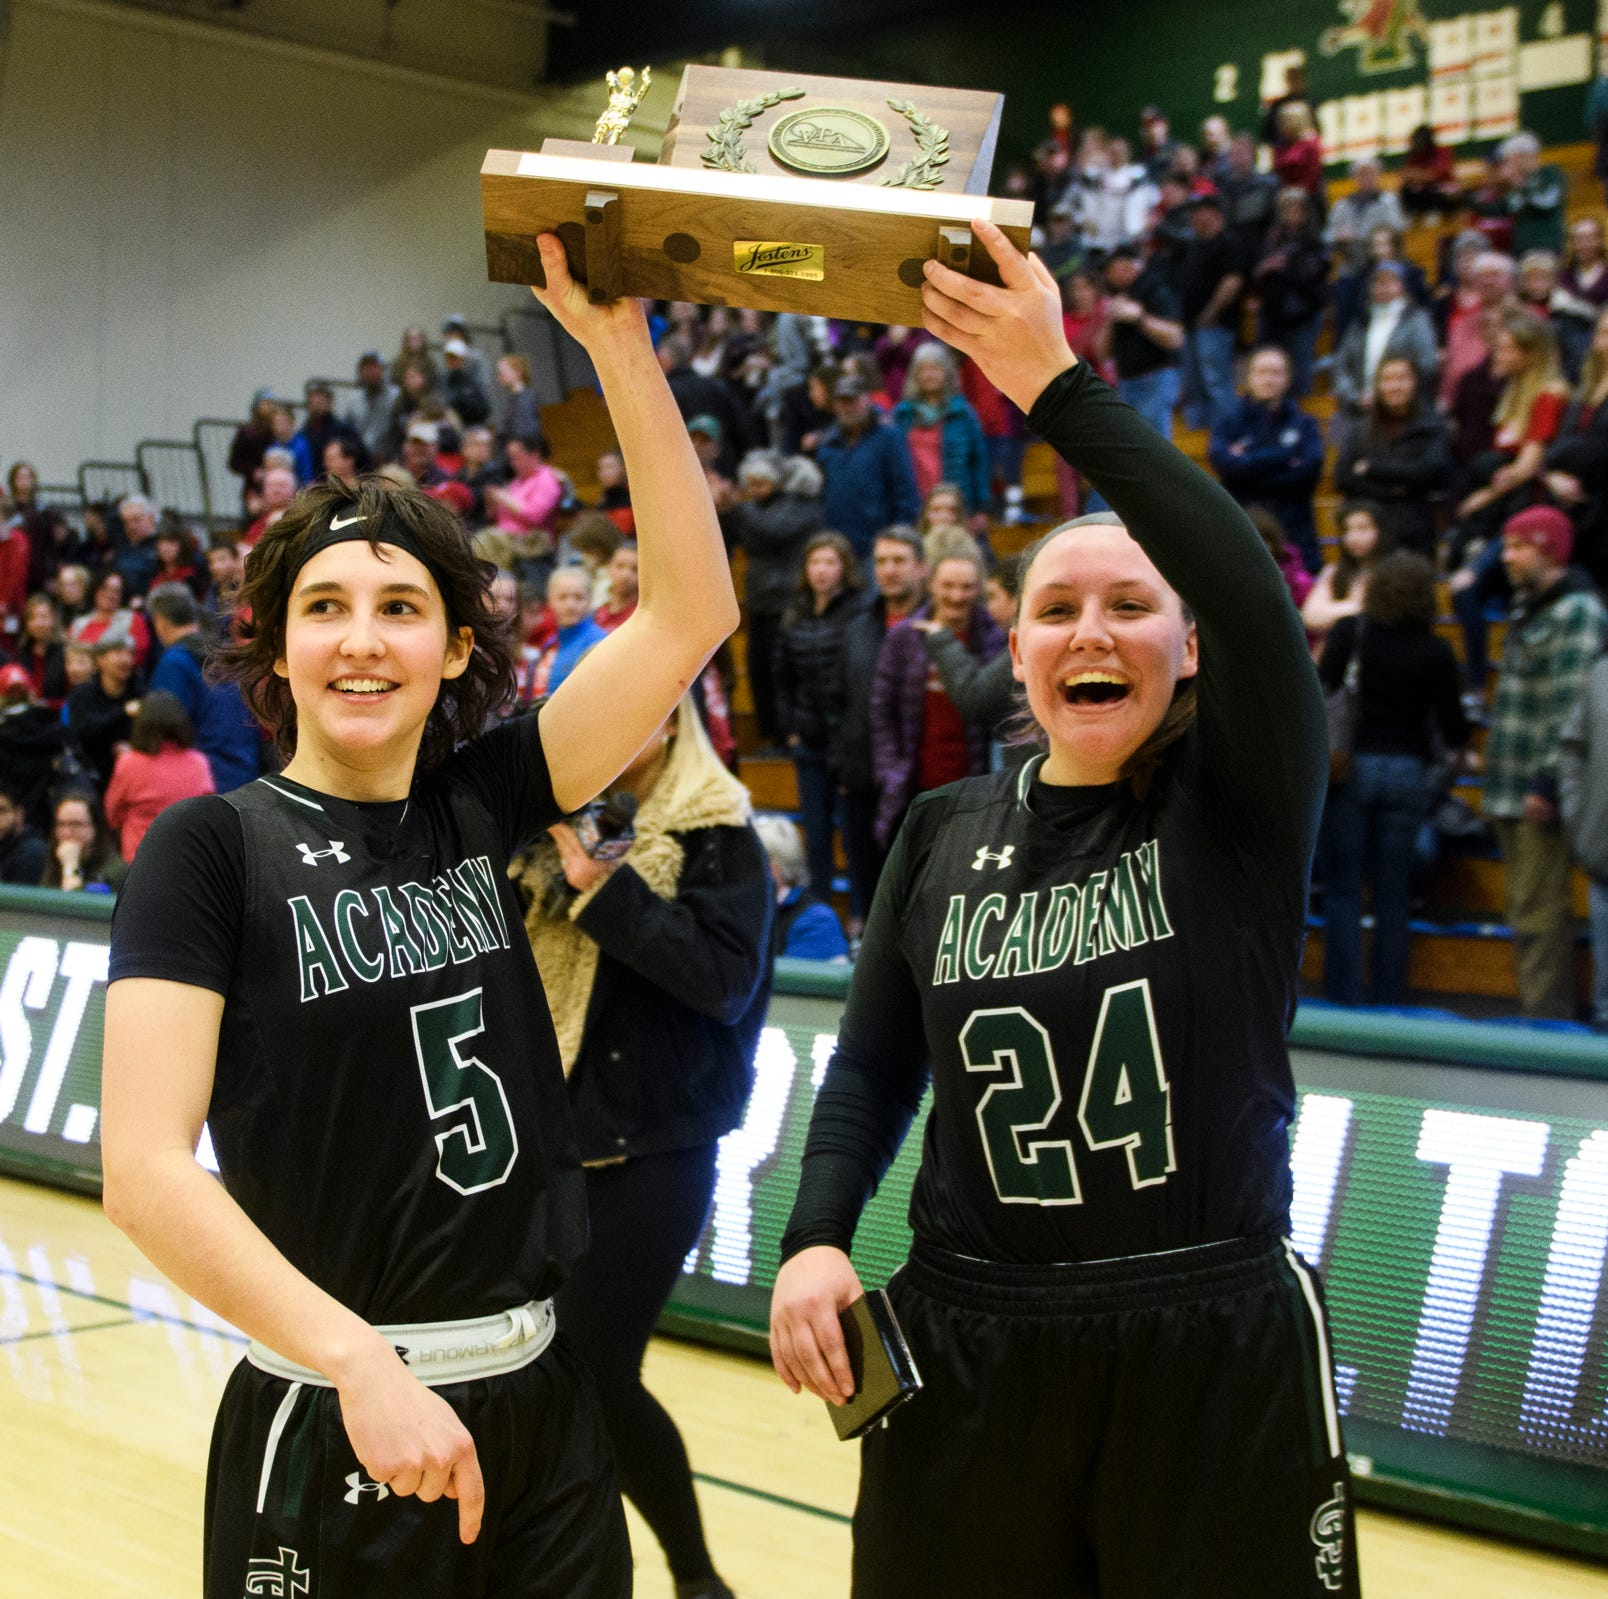 St. Johnsbury solves CVU again to retain D-I girls basketball crown